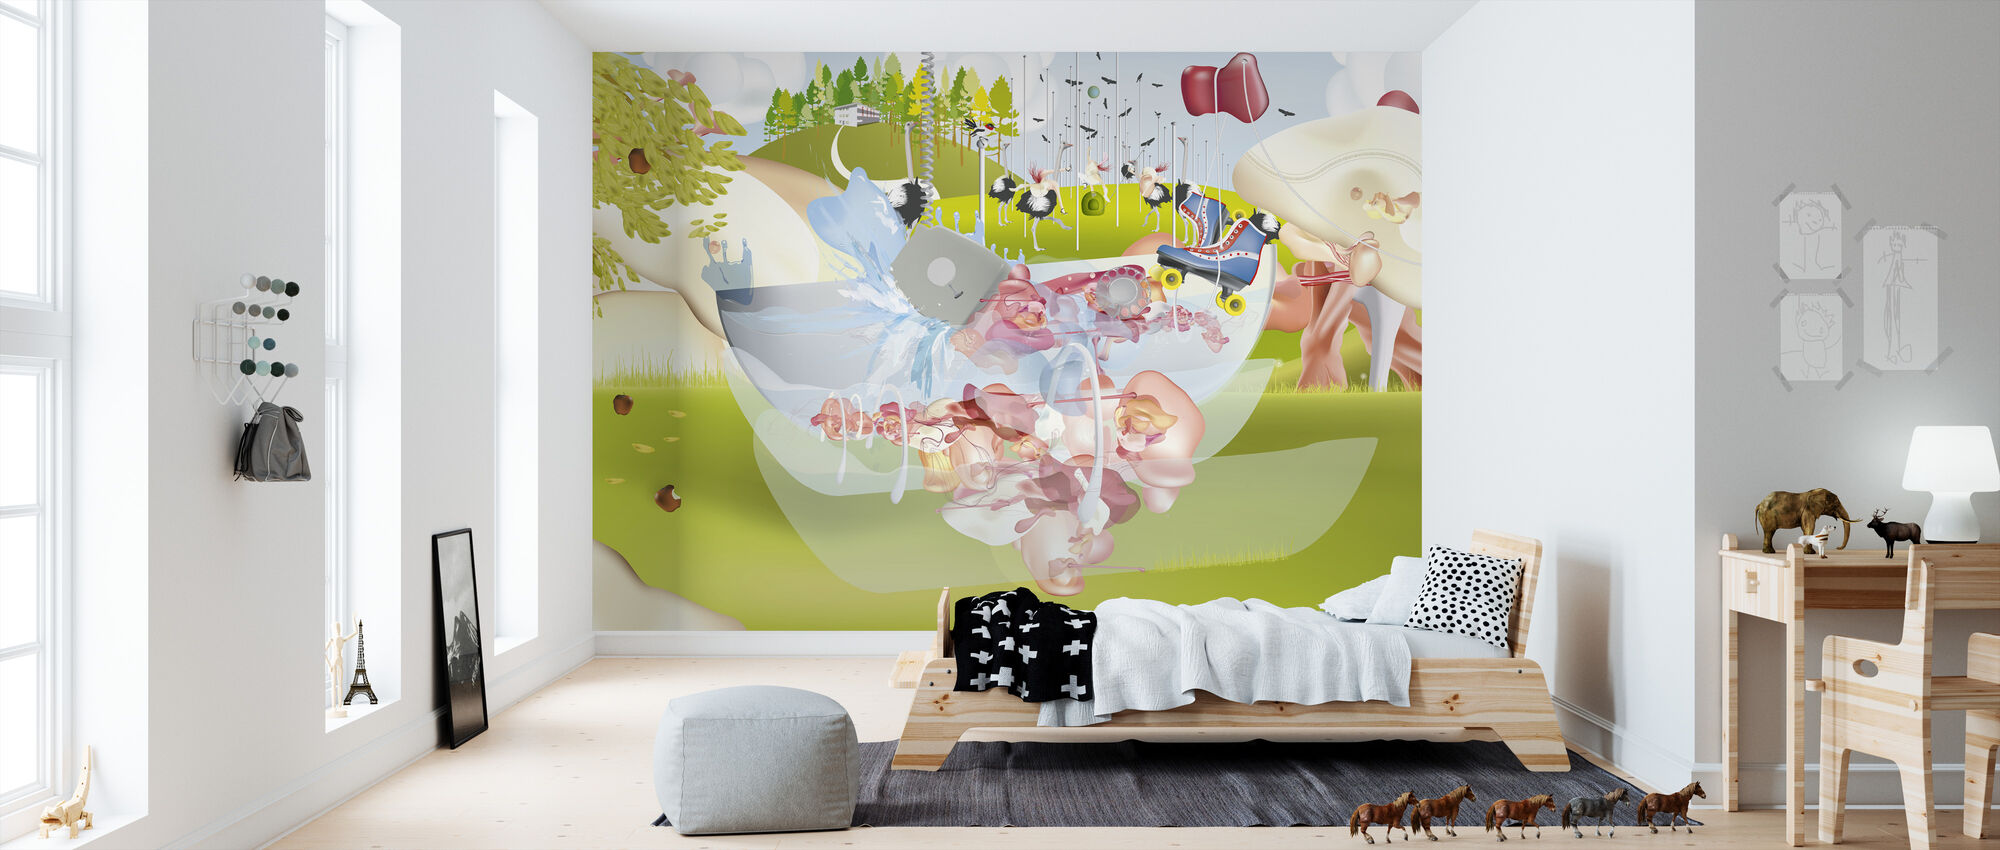 Landscape 2 - Wallpaper - Kids Room